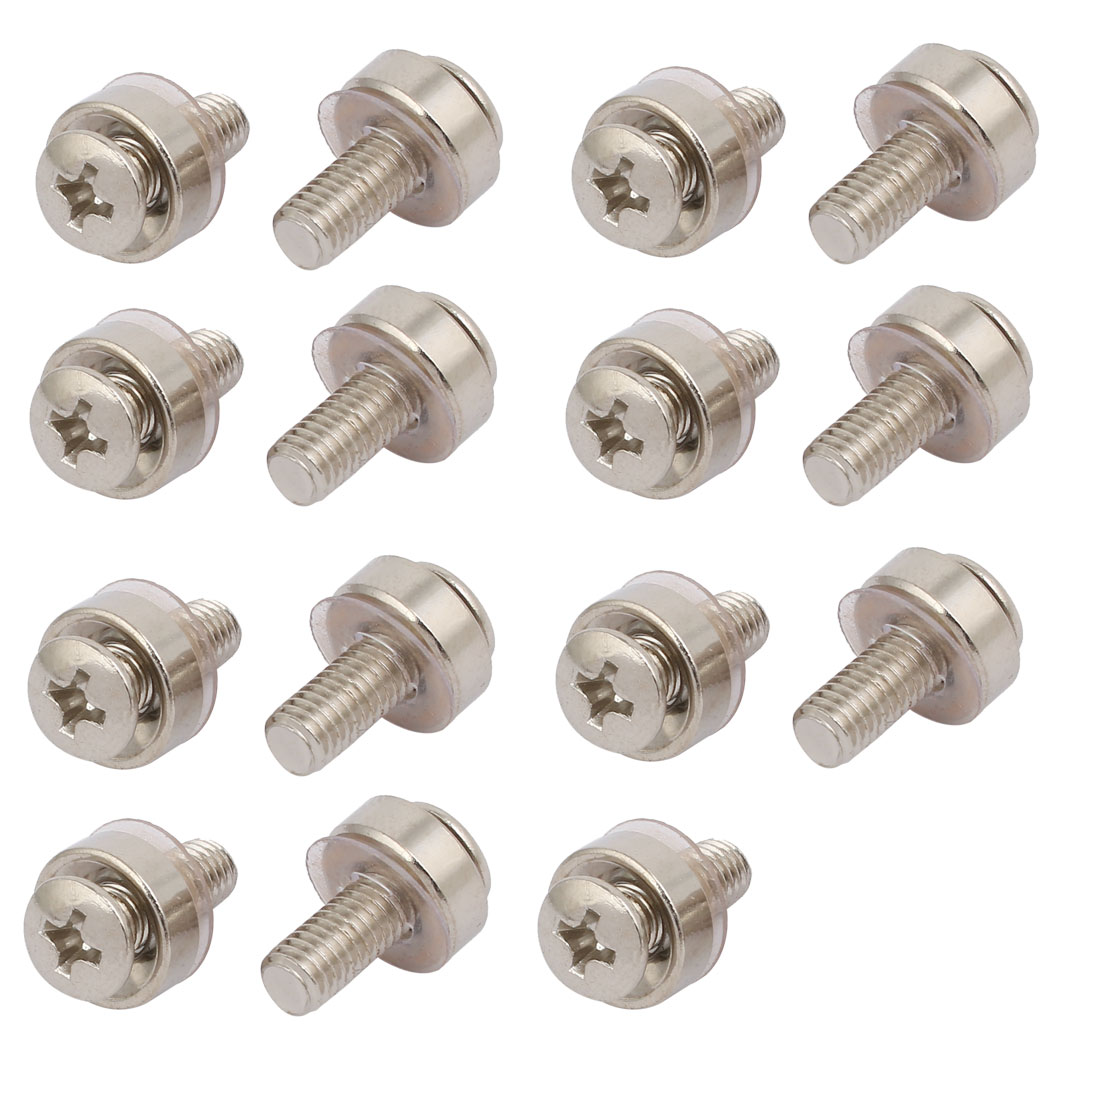 15pcs M5 Carbon Steel Mounting Screws Silver Tone for Server Rack Cabinet